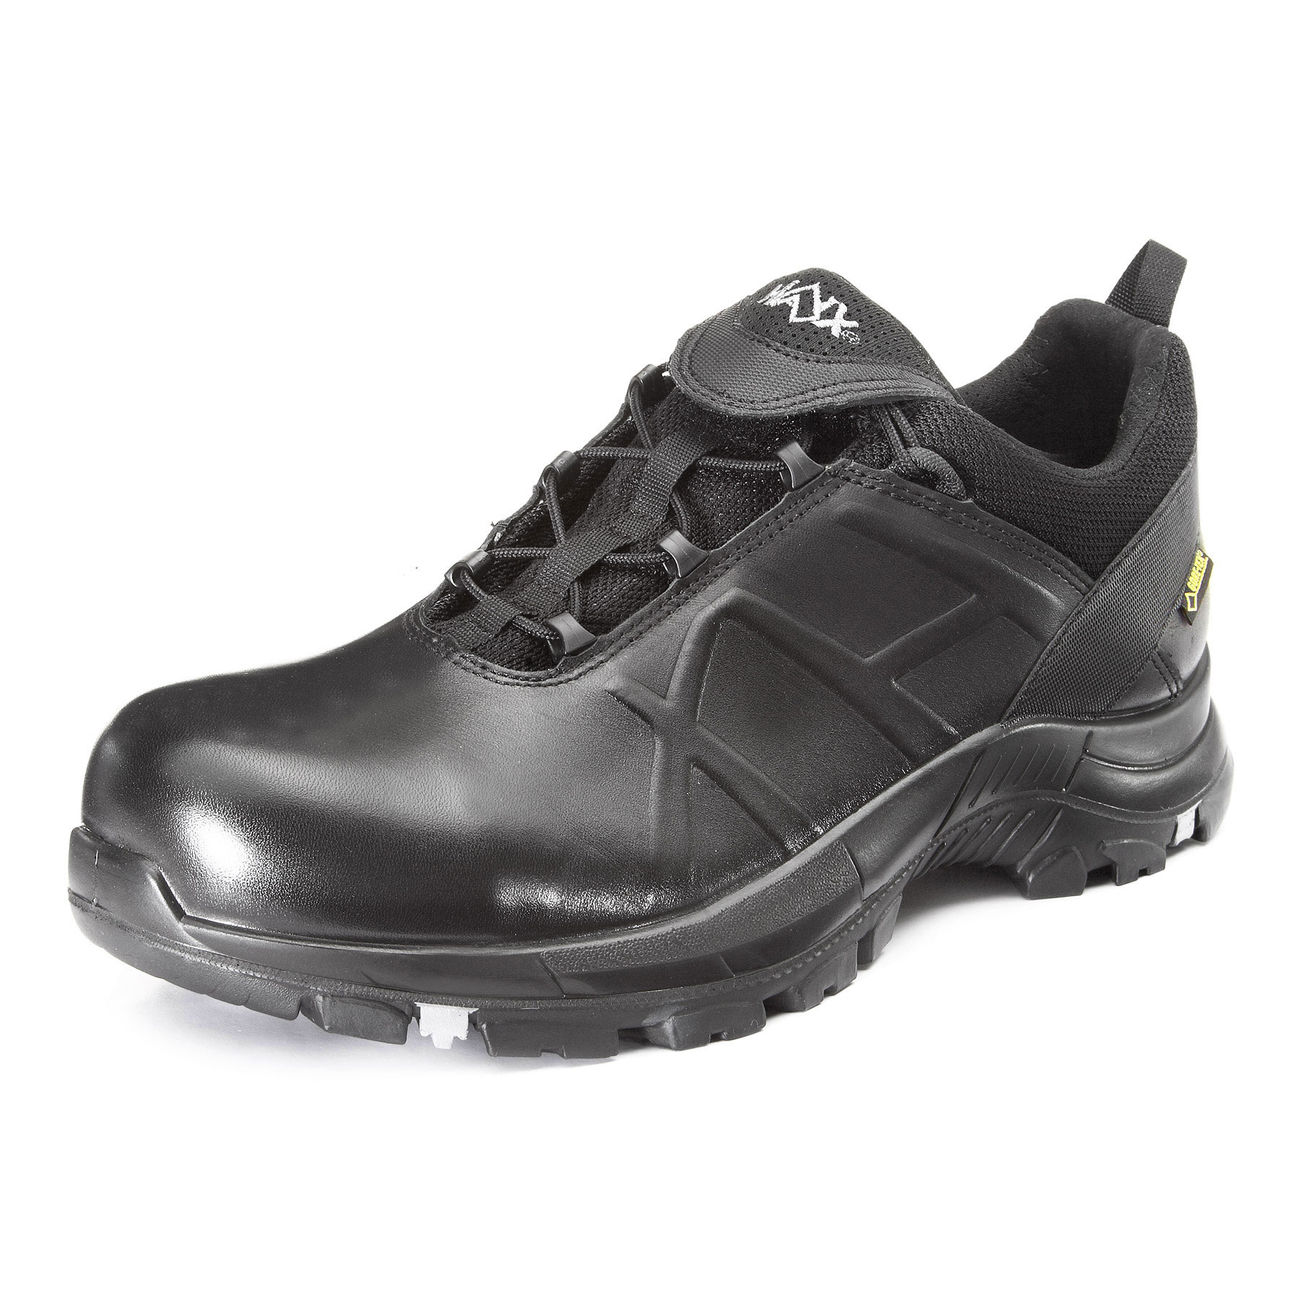 Haix Sicherhheitsschuh Black Eagle Safety 50 Low Leder schwarz 6